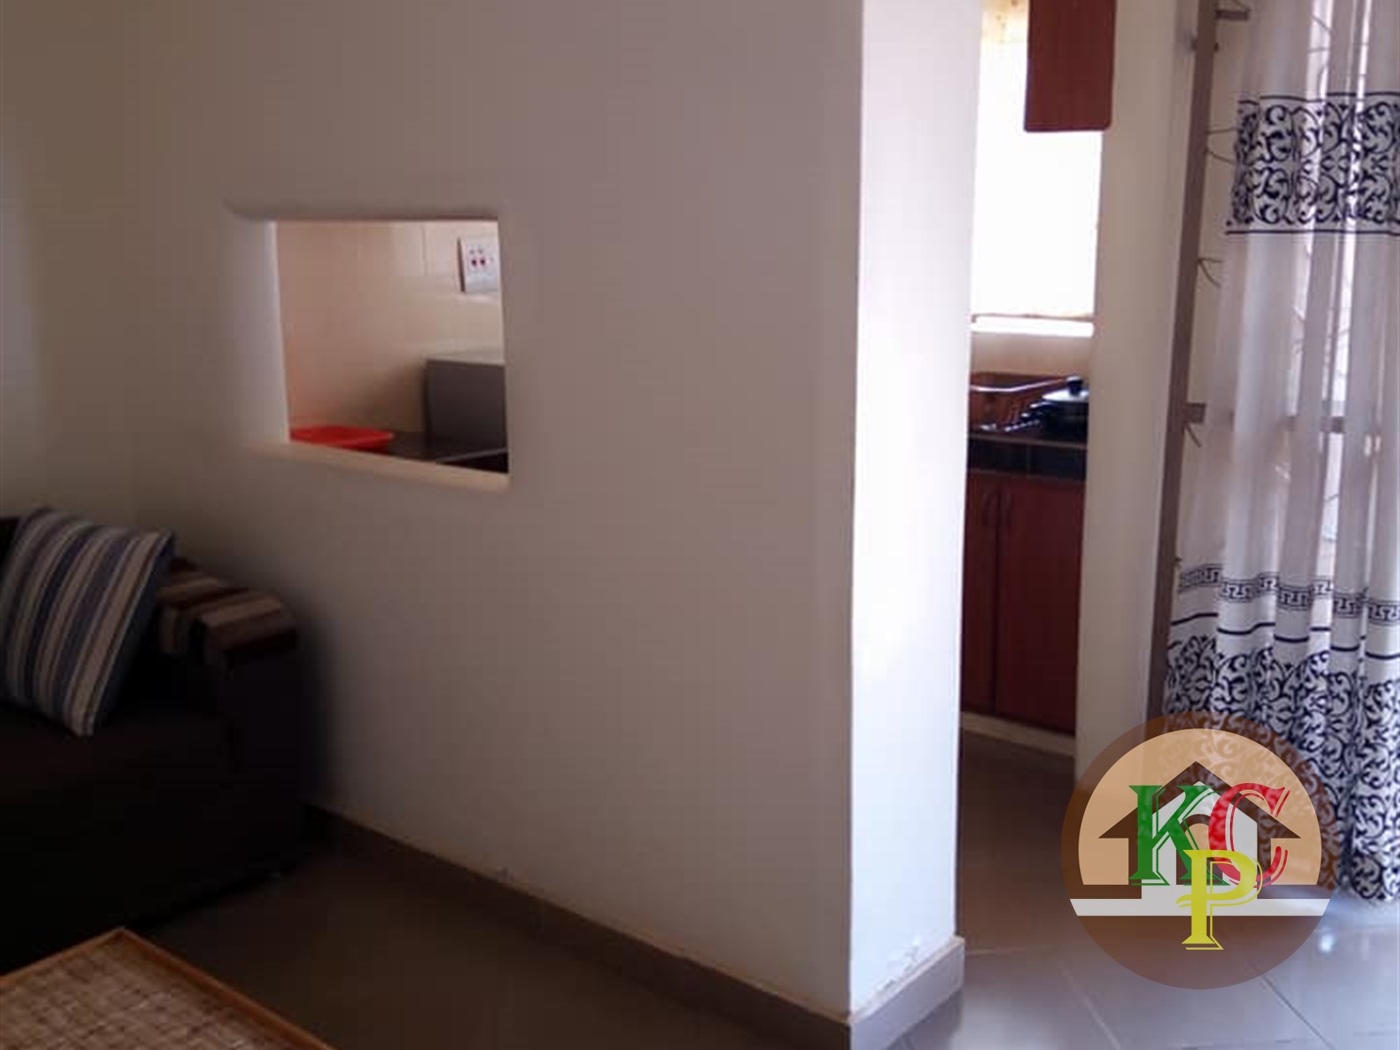 Apartment for rent in Kiira Wakiso